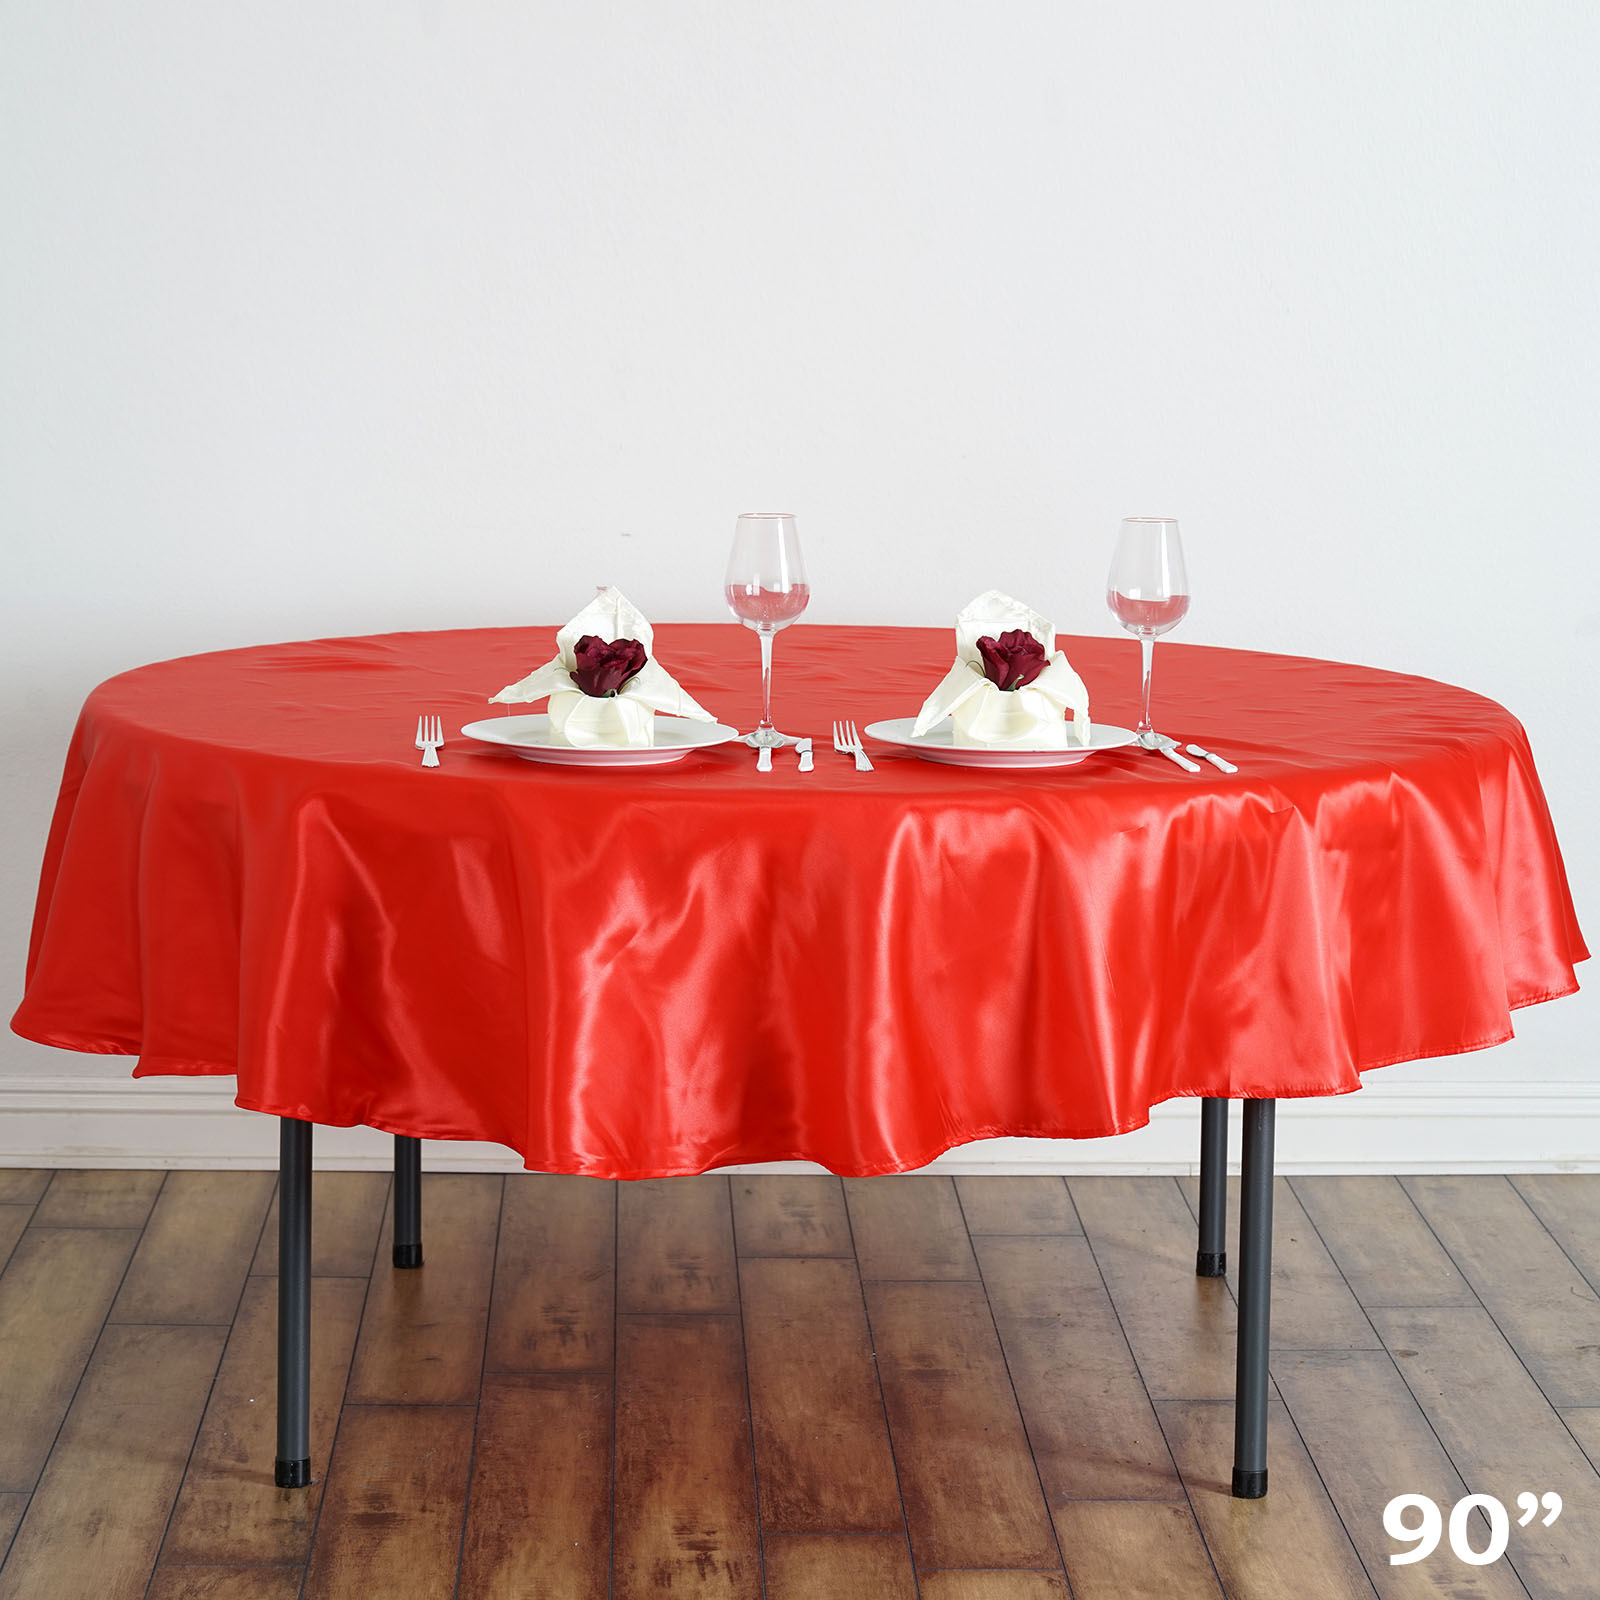 "Efavormart 90"" Round Satin Tablecloth for Kitchen Dining Catering Wedding Birthday Party Decorations Events"